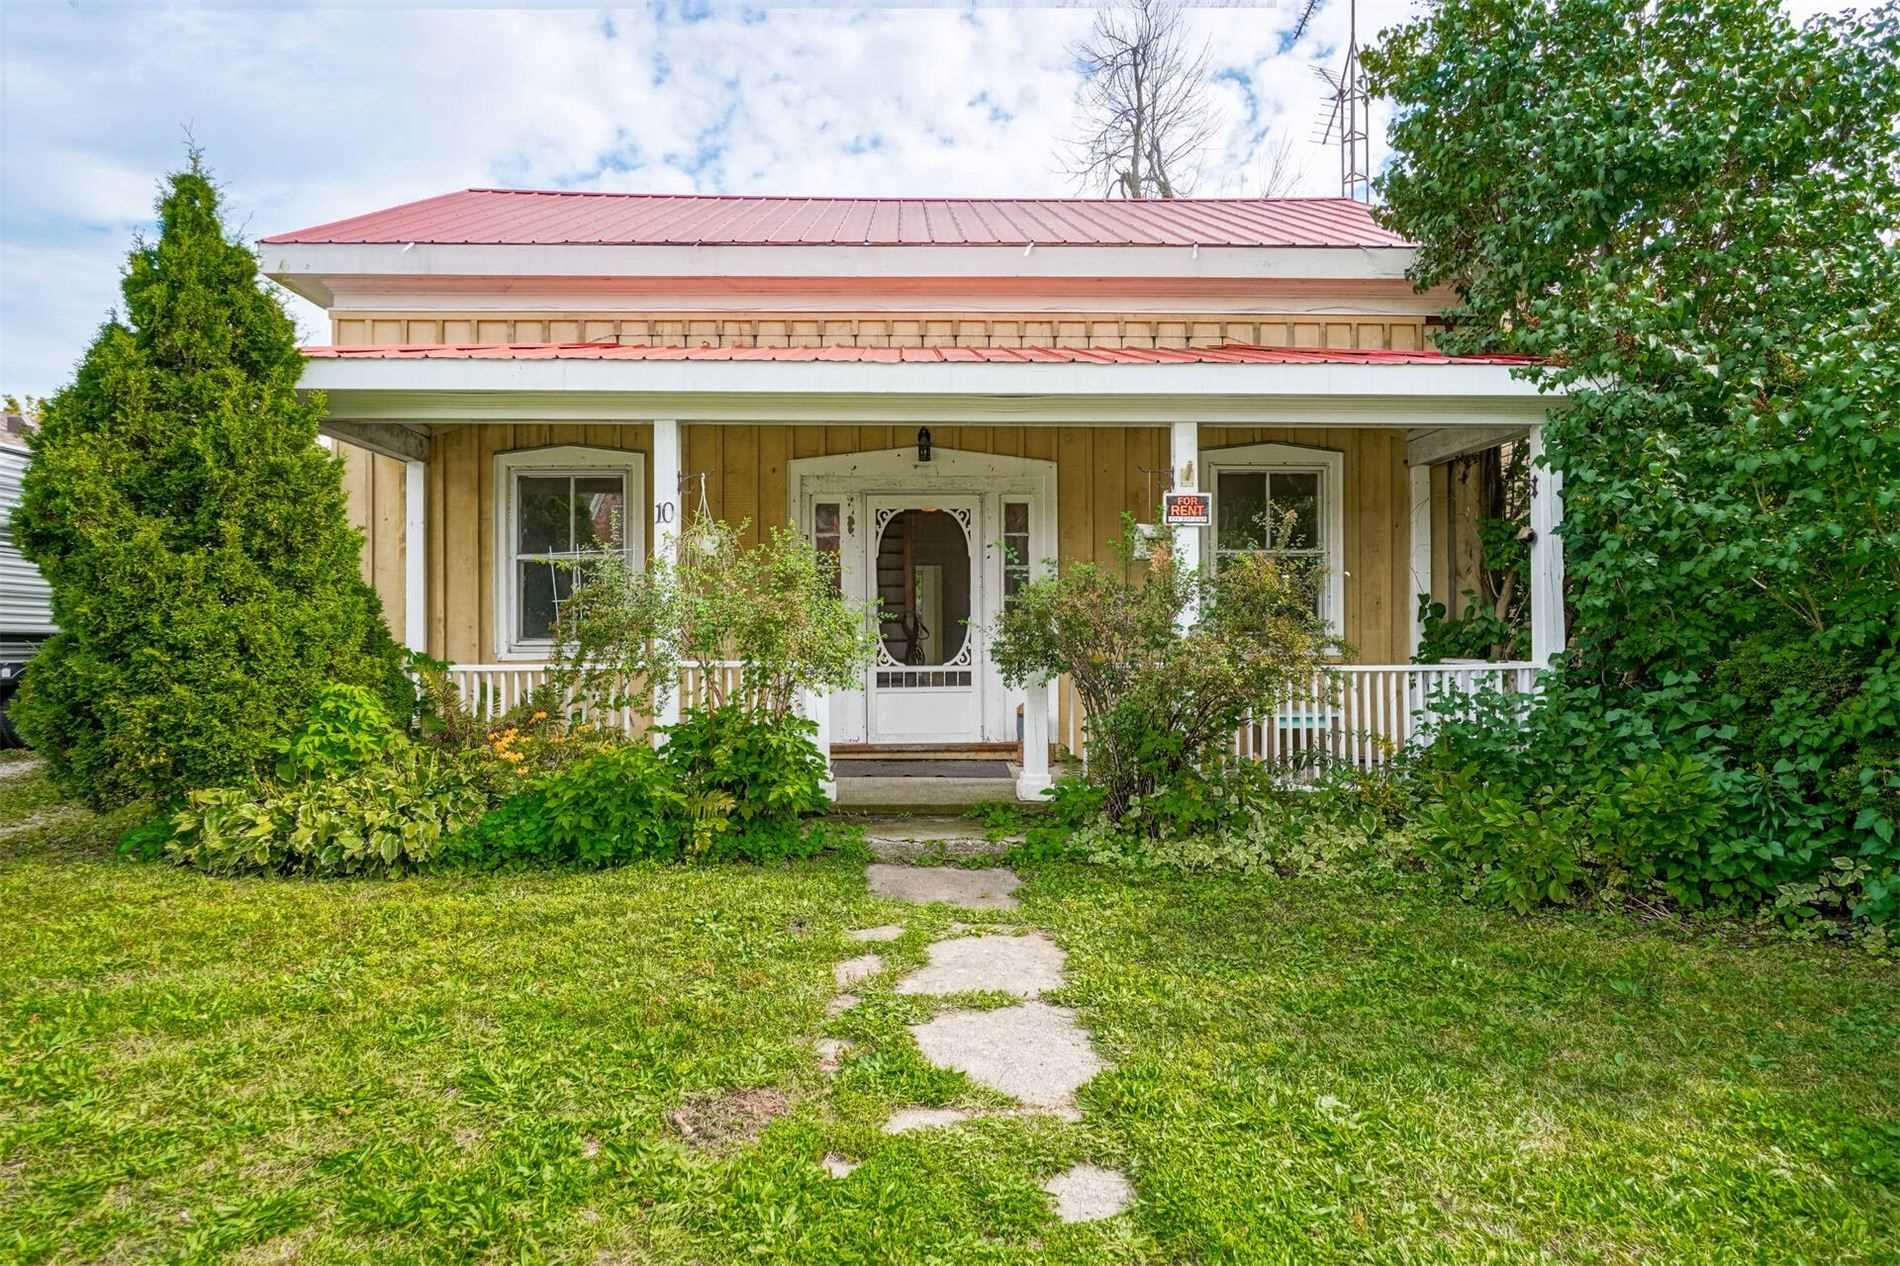 Detached house For Sale In Erin - 10 Church Blvd, Erin, Ontario, Canada N0B 1T0 , 3 Bedrooms Bedrooms, ,2 BathroomsBathrooms,Detached,For Sale,Church